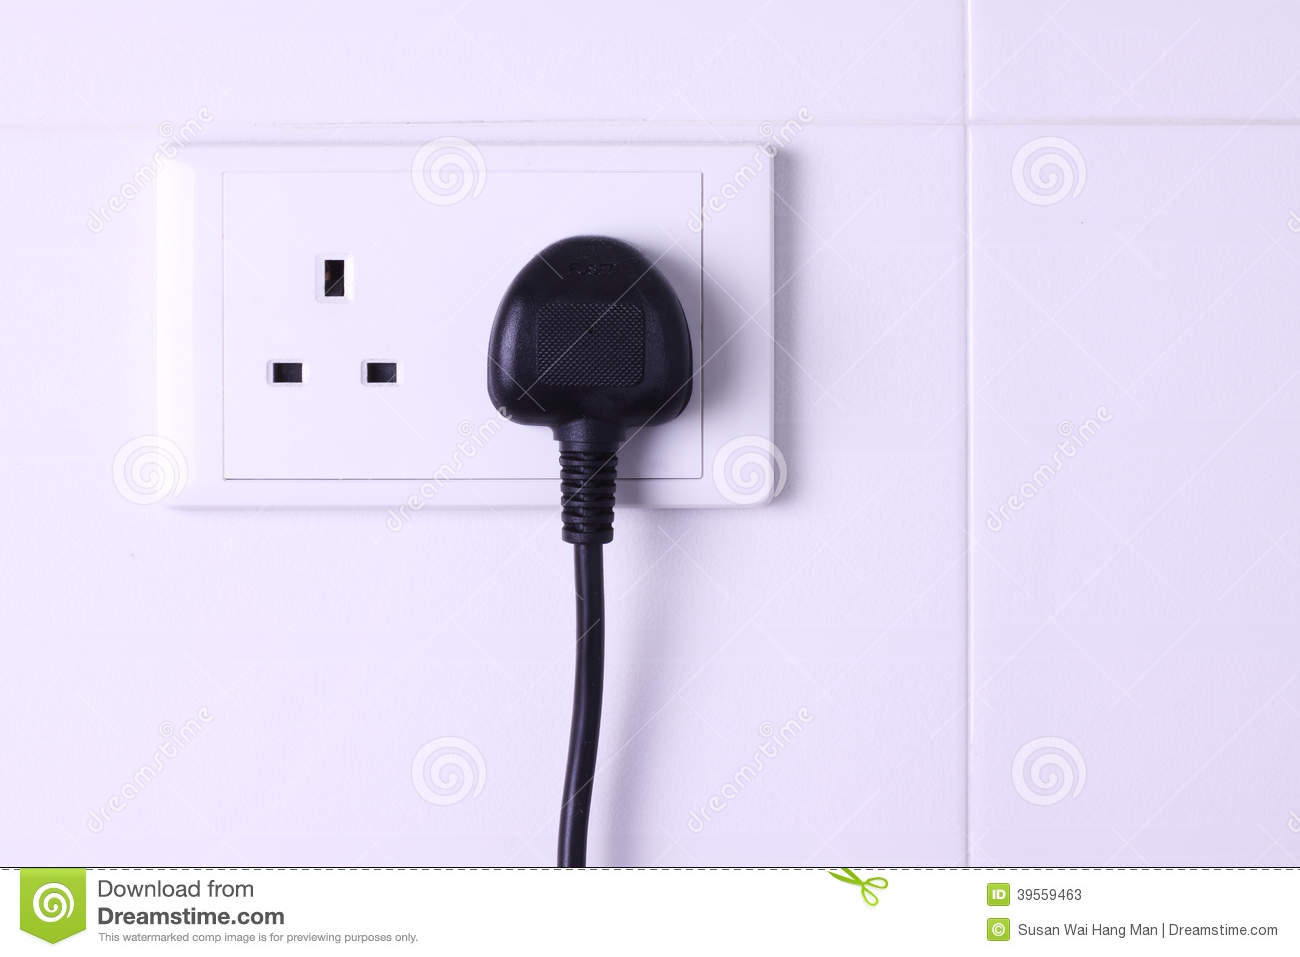 4 Pin Electrical Switch Not Lossing Wiring Diagram Drill 120v Plugged In Socket Against White Tiles Background Stock